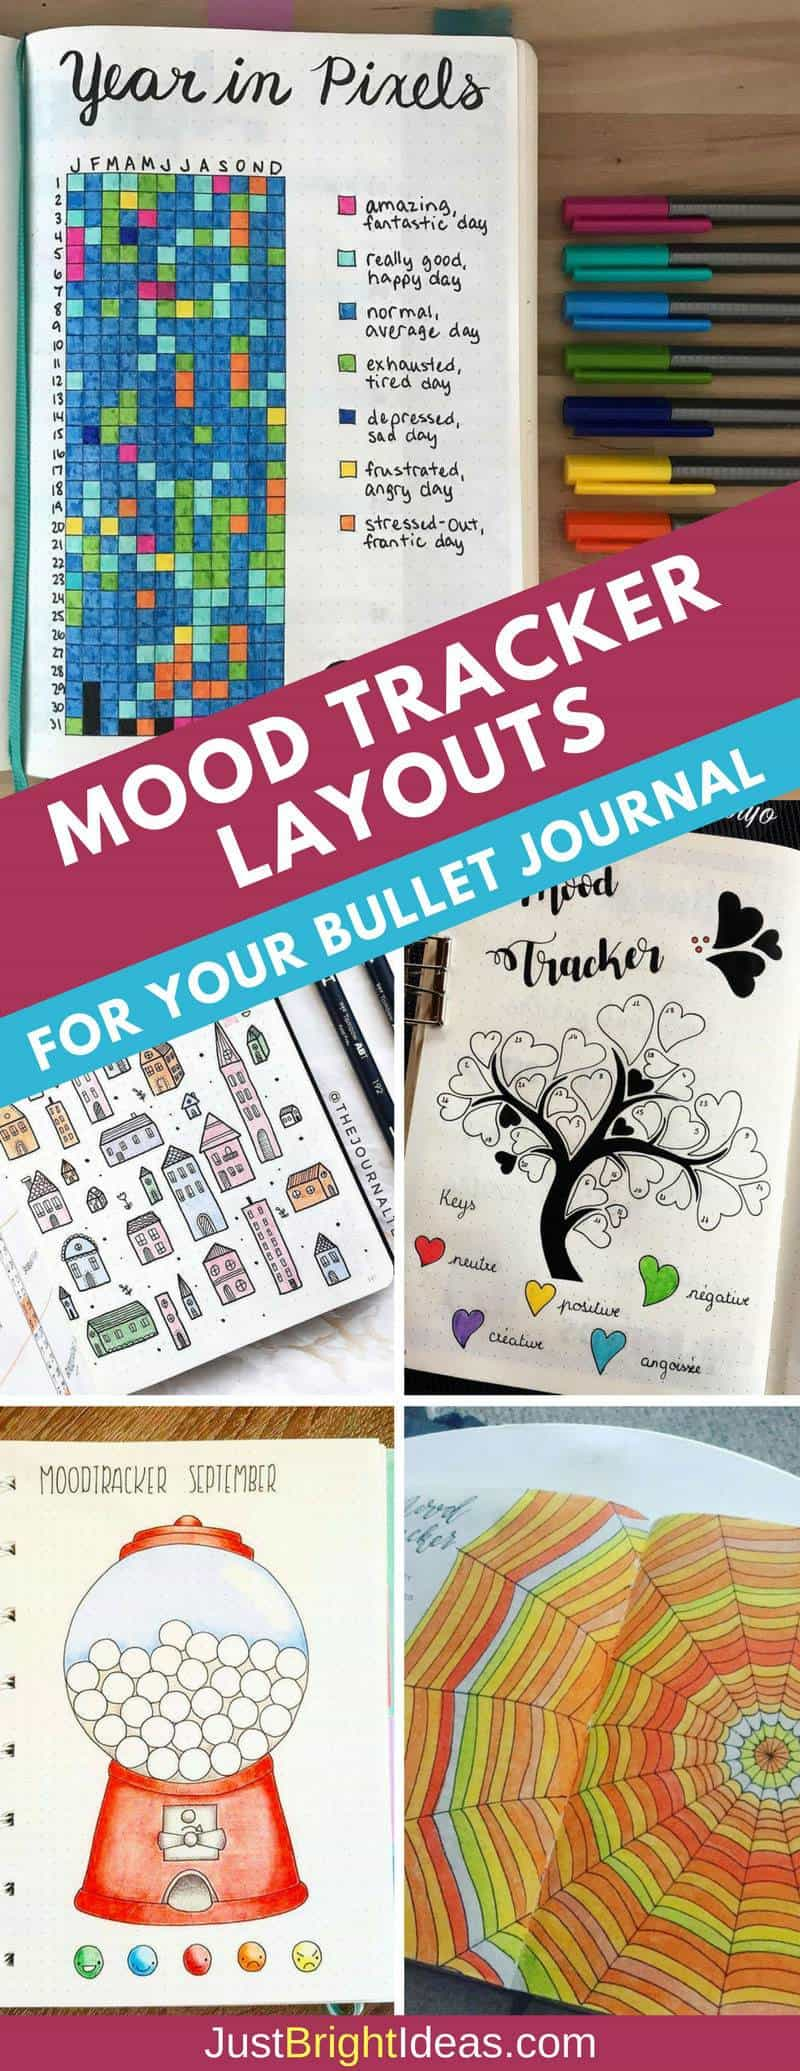 Bullet Journal Mood Tracker Layout Ideas